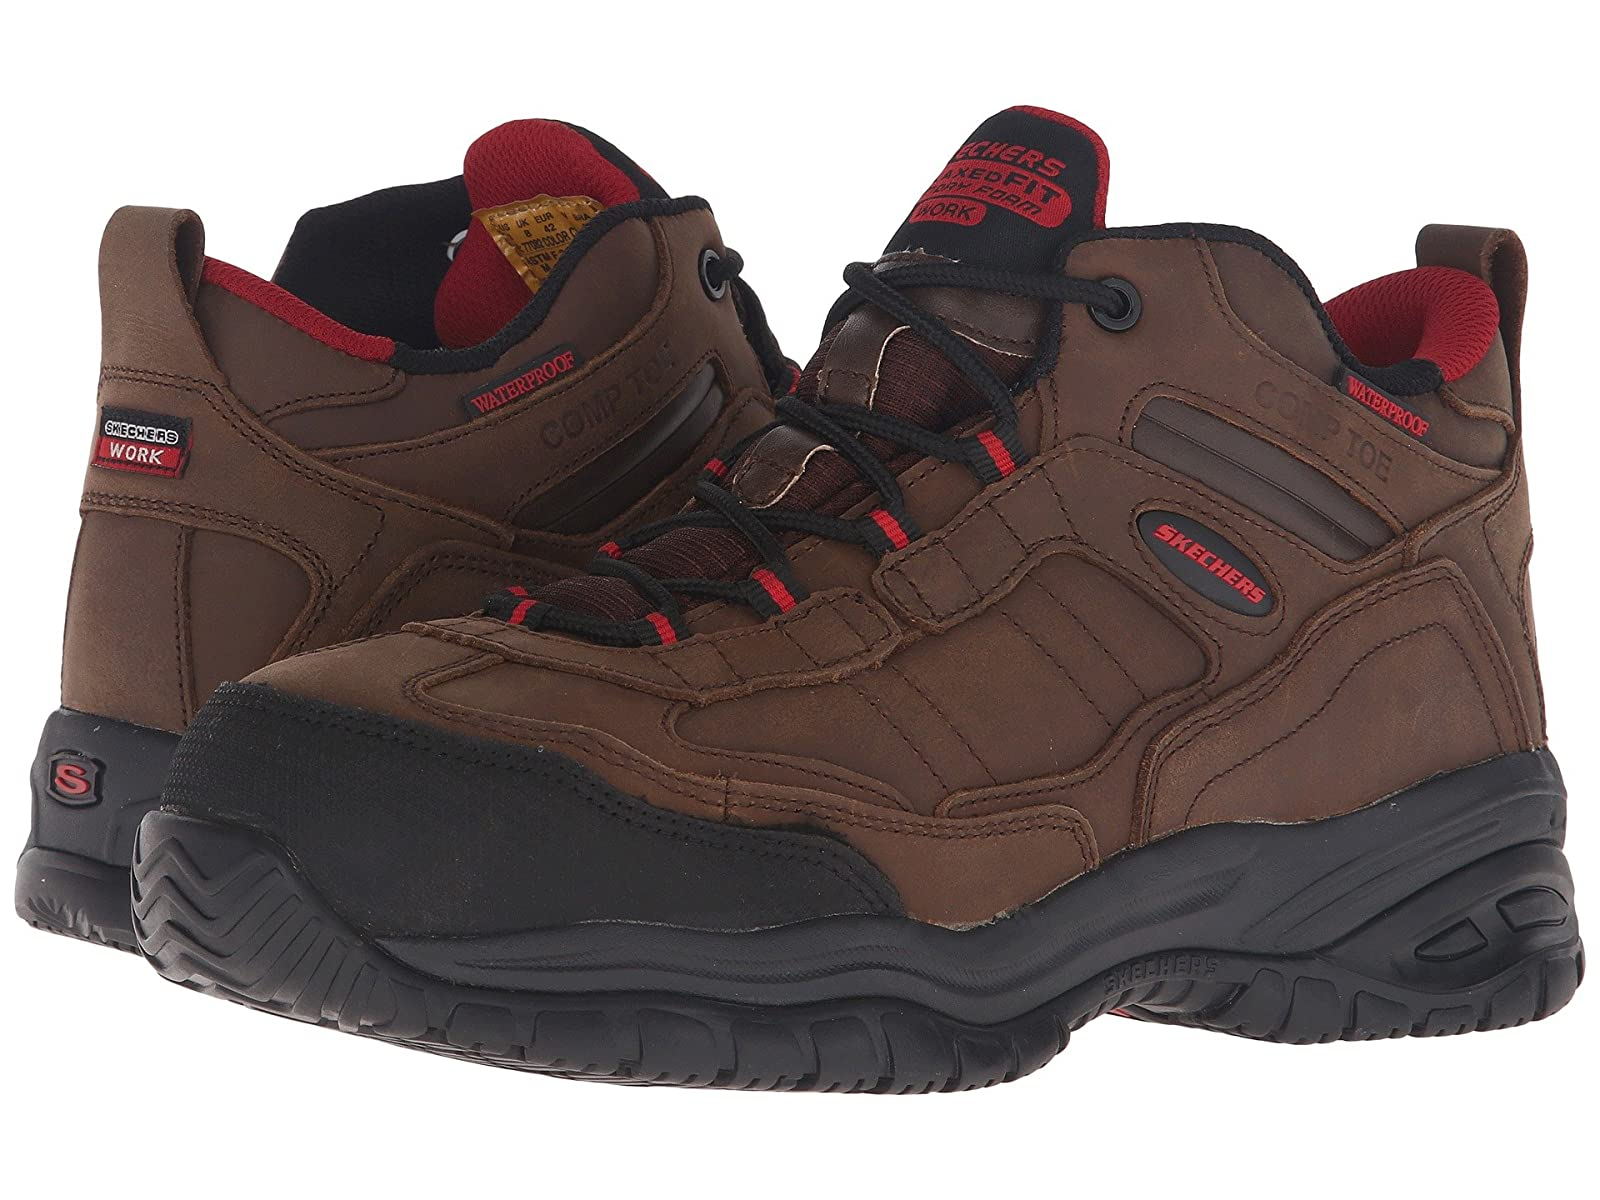 SKECHERS Work Soft Stride - GilbeCheap and distinctive eye-catching shoes